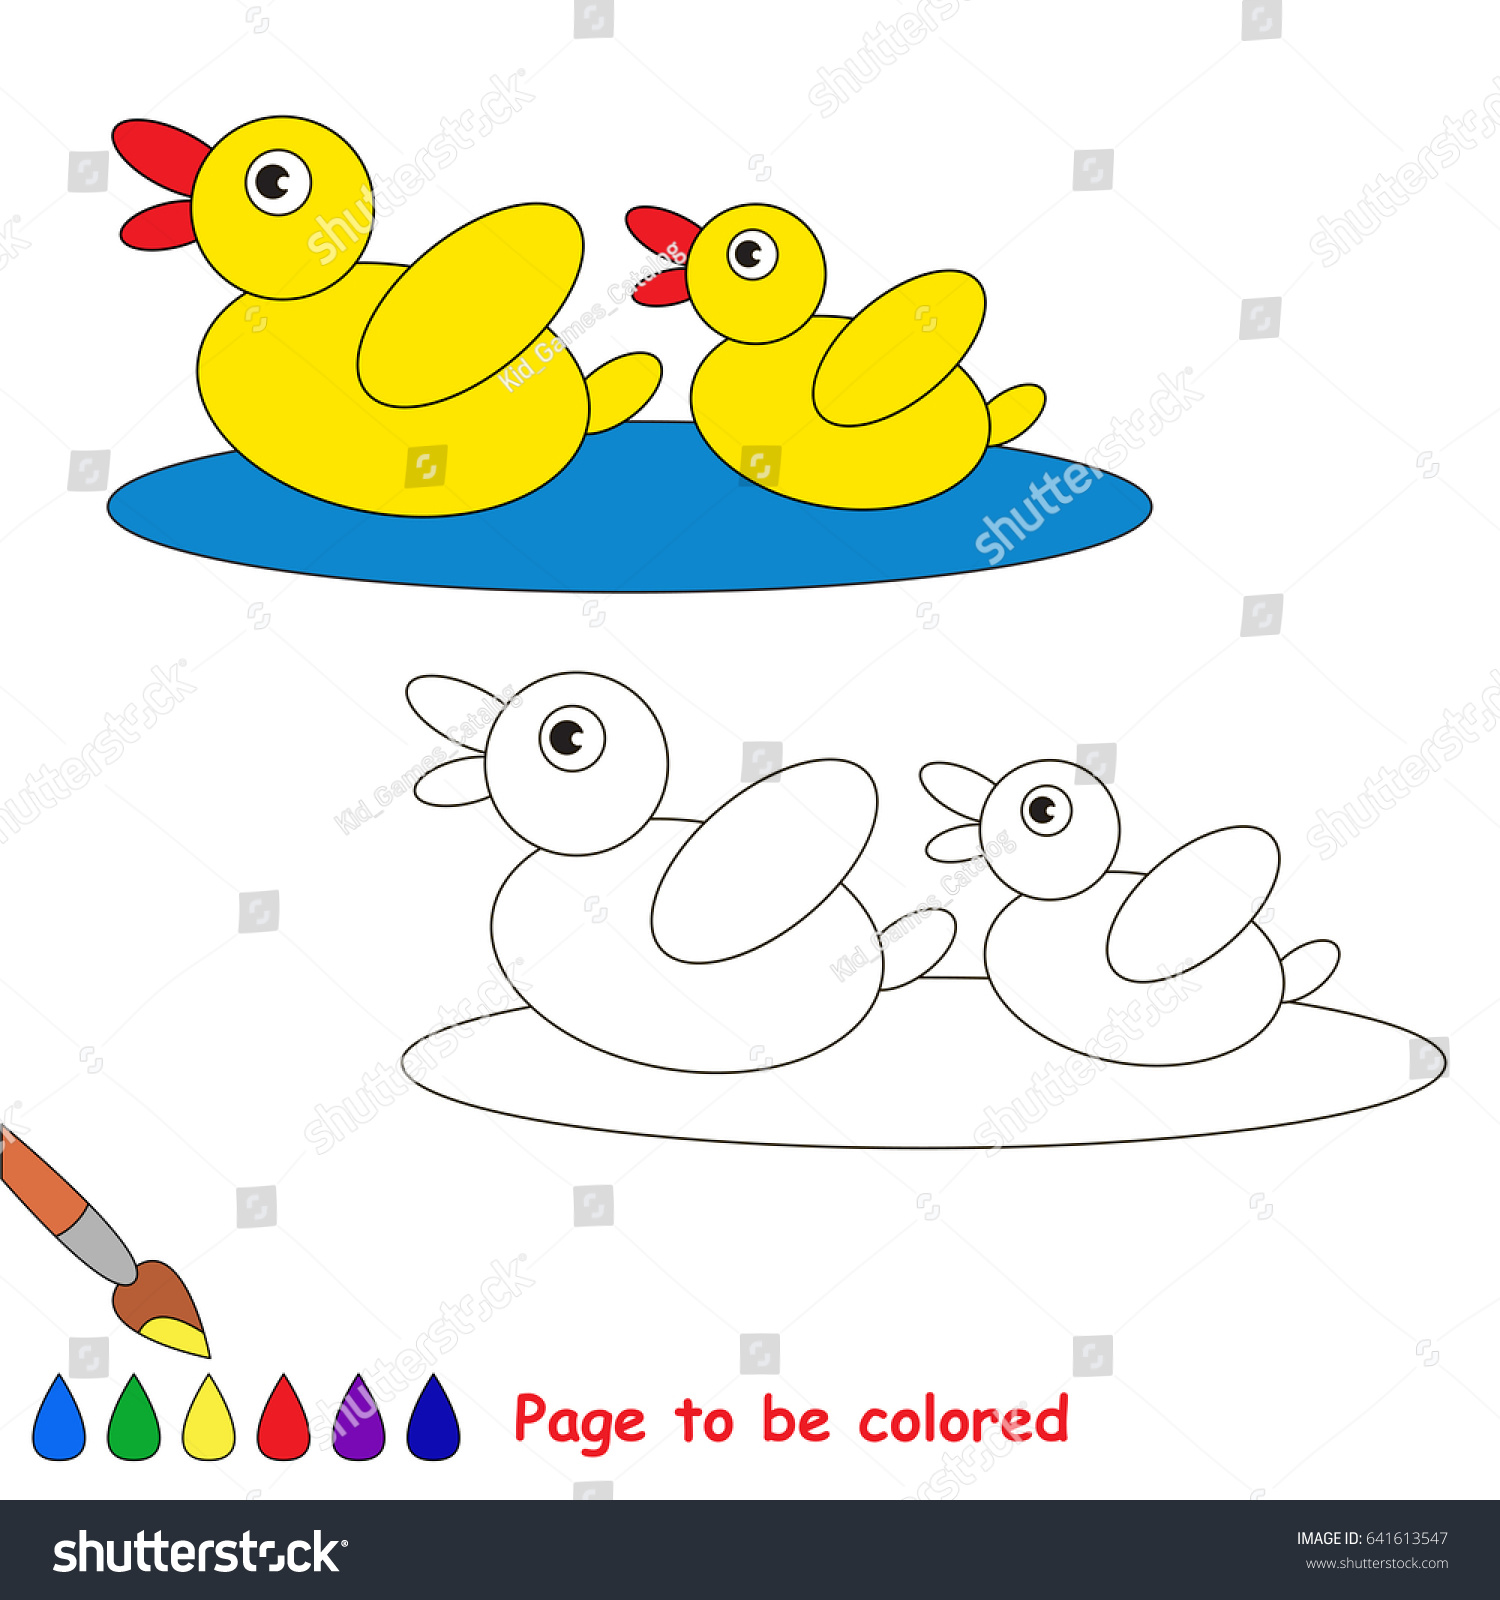 Two Yellow Ducks Be Colored Coloring Stock Vector